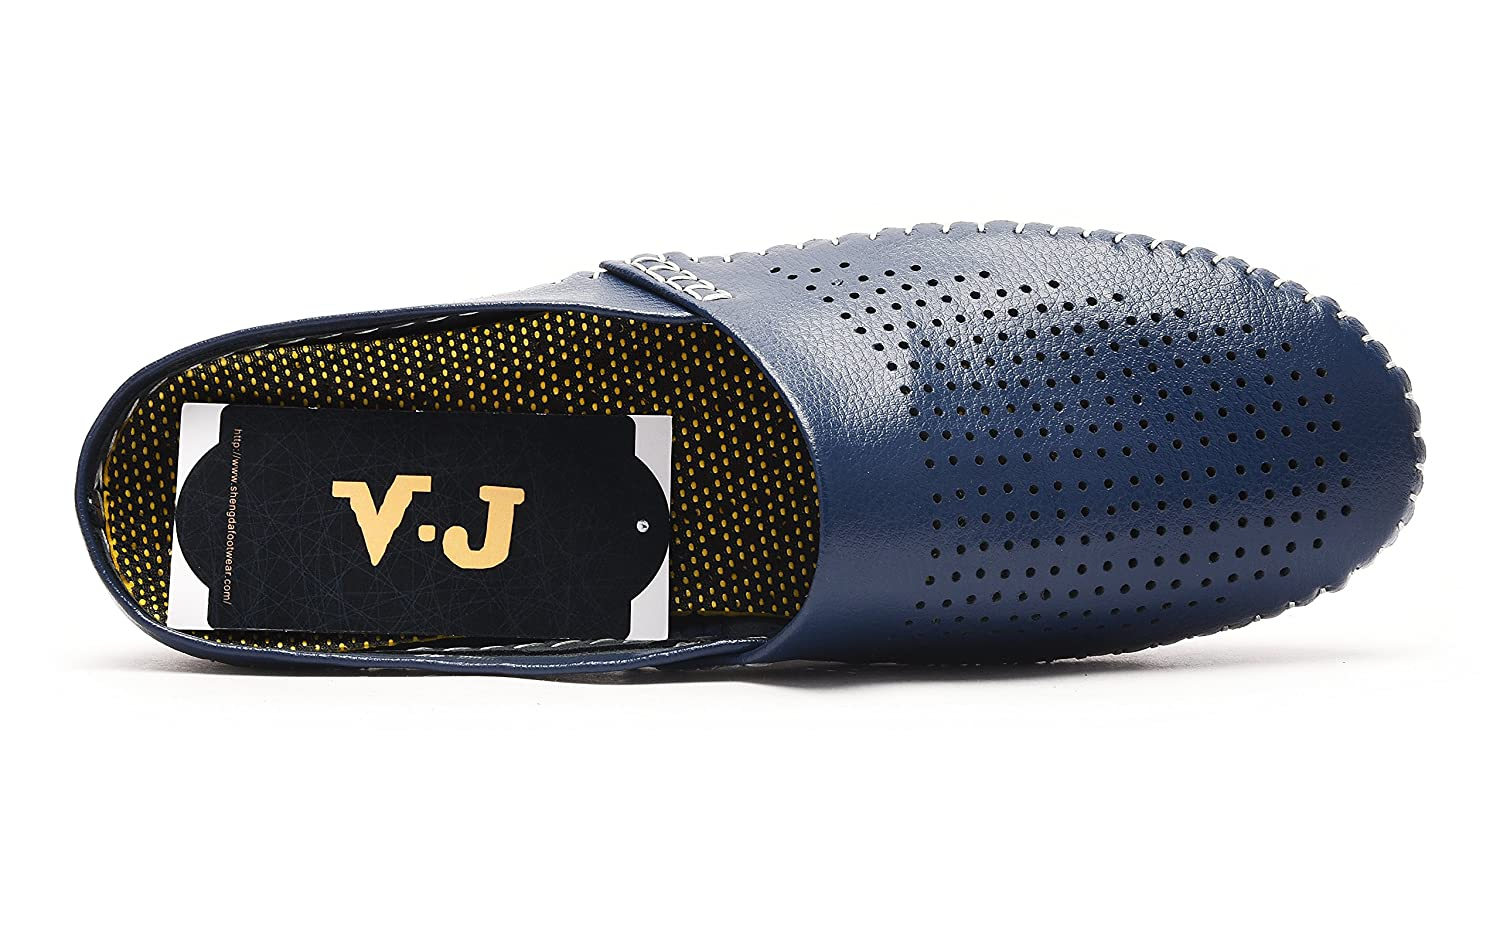 V.J Mens Classic Handsewn Genuine Leather House Slippers Office Slippers Casual Breathable Sandals